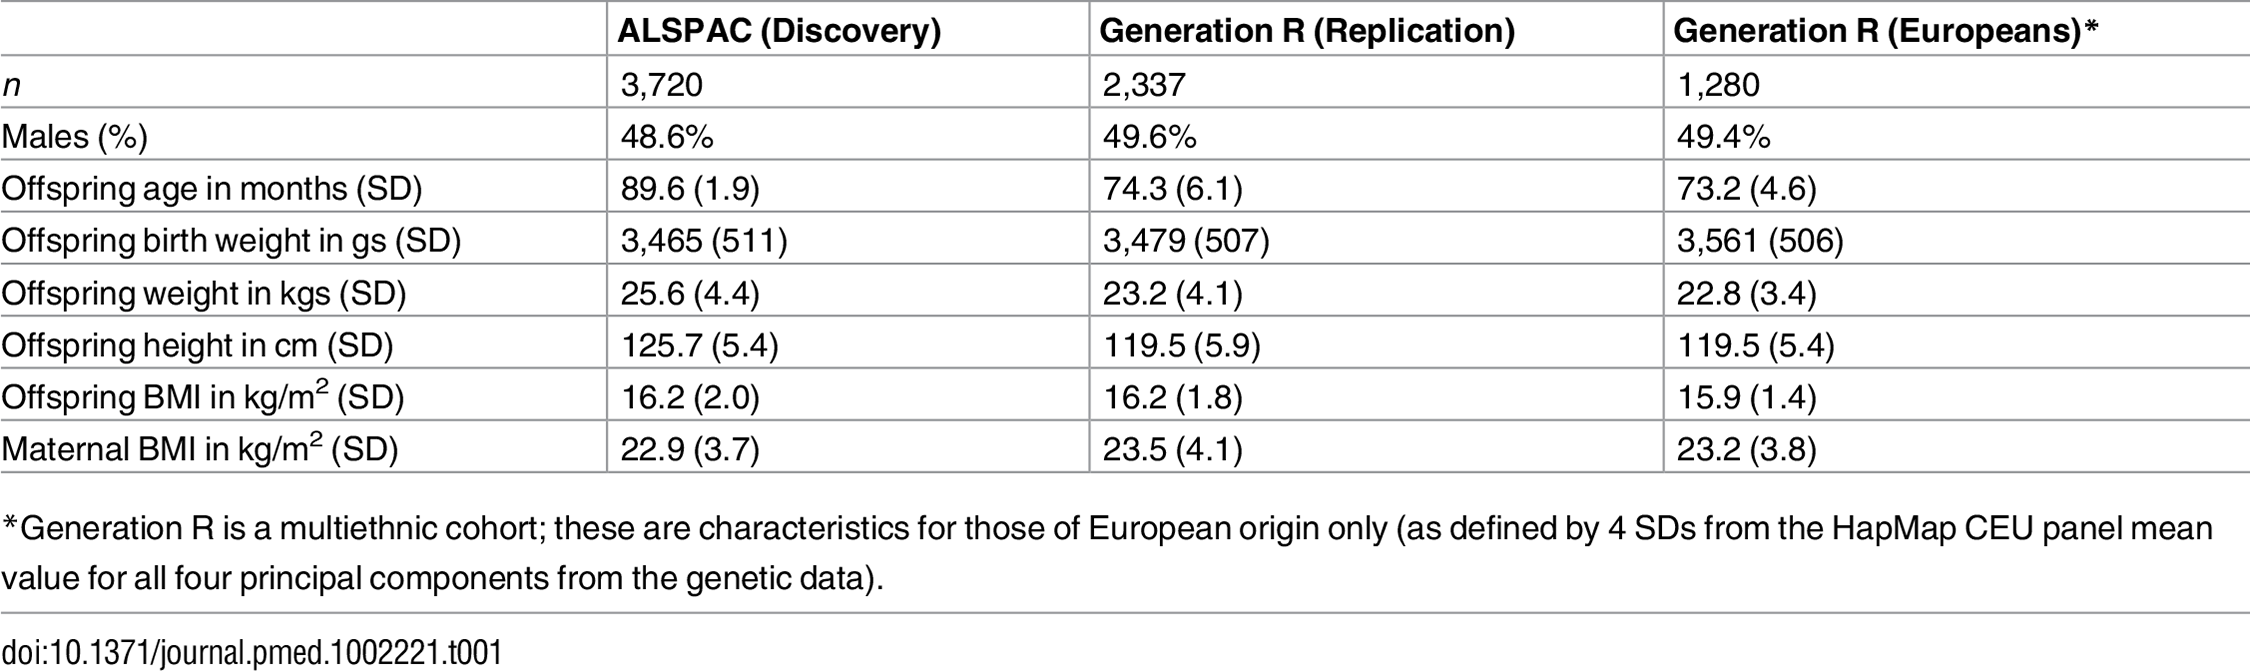 Characteristics of the offspring and their mothers in the Discovery and Replication cohorts.